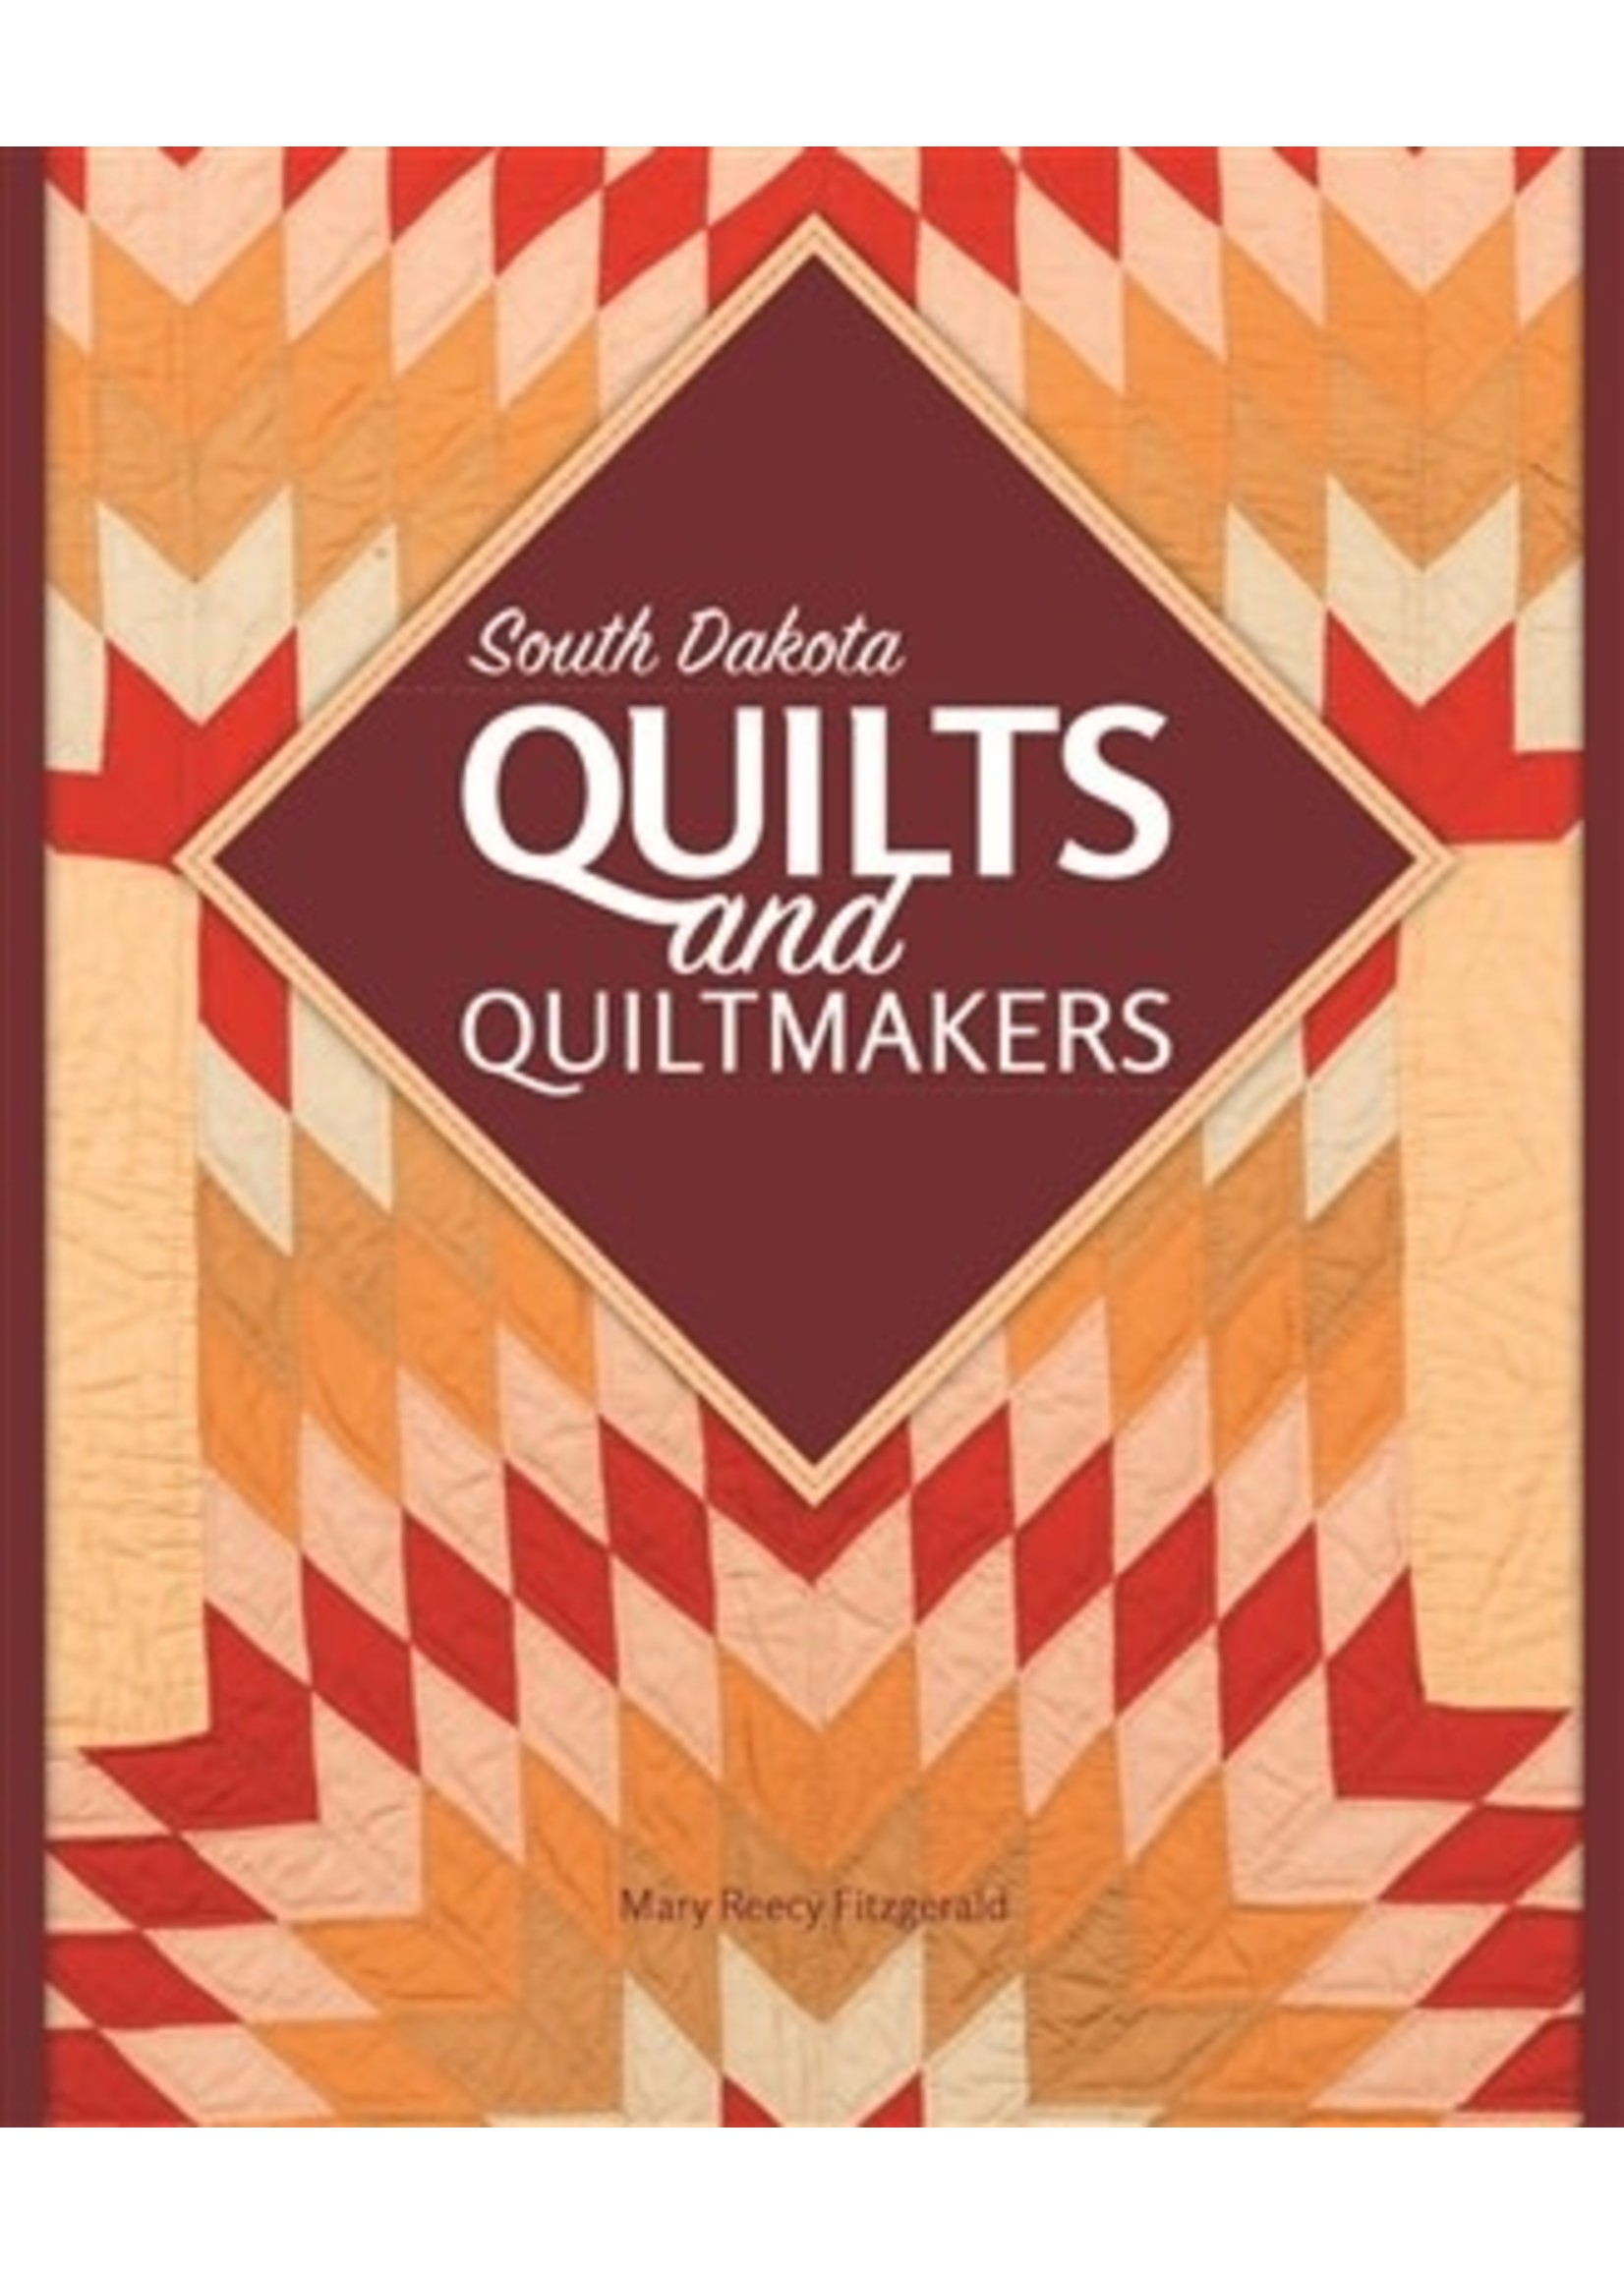 South Dakota Quilts and Quiltmakers